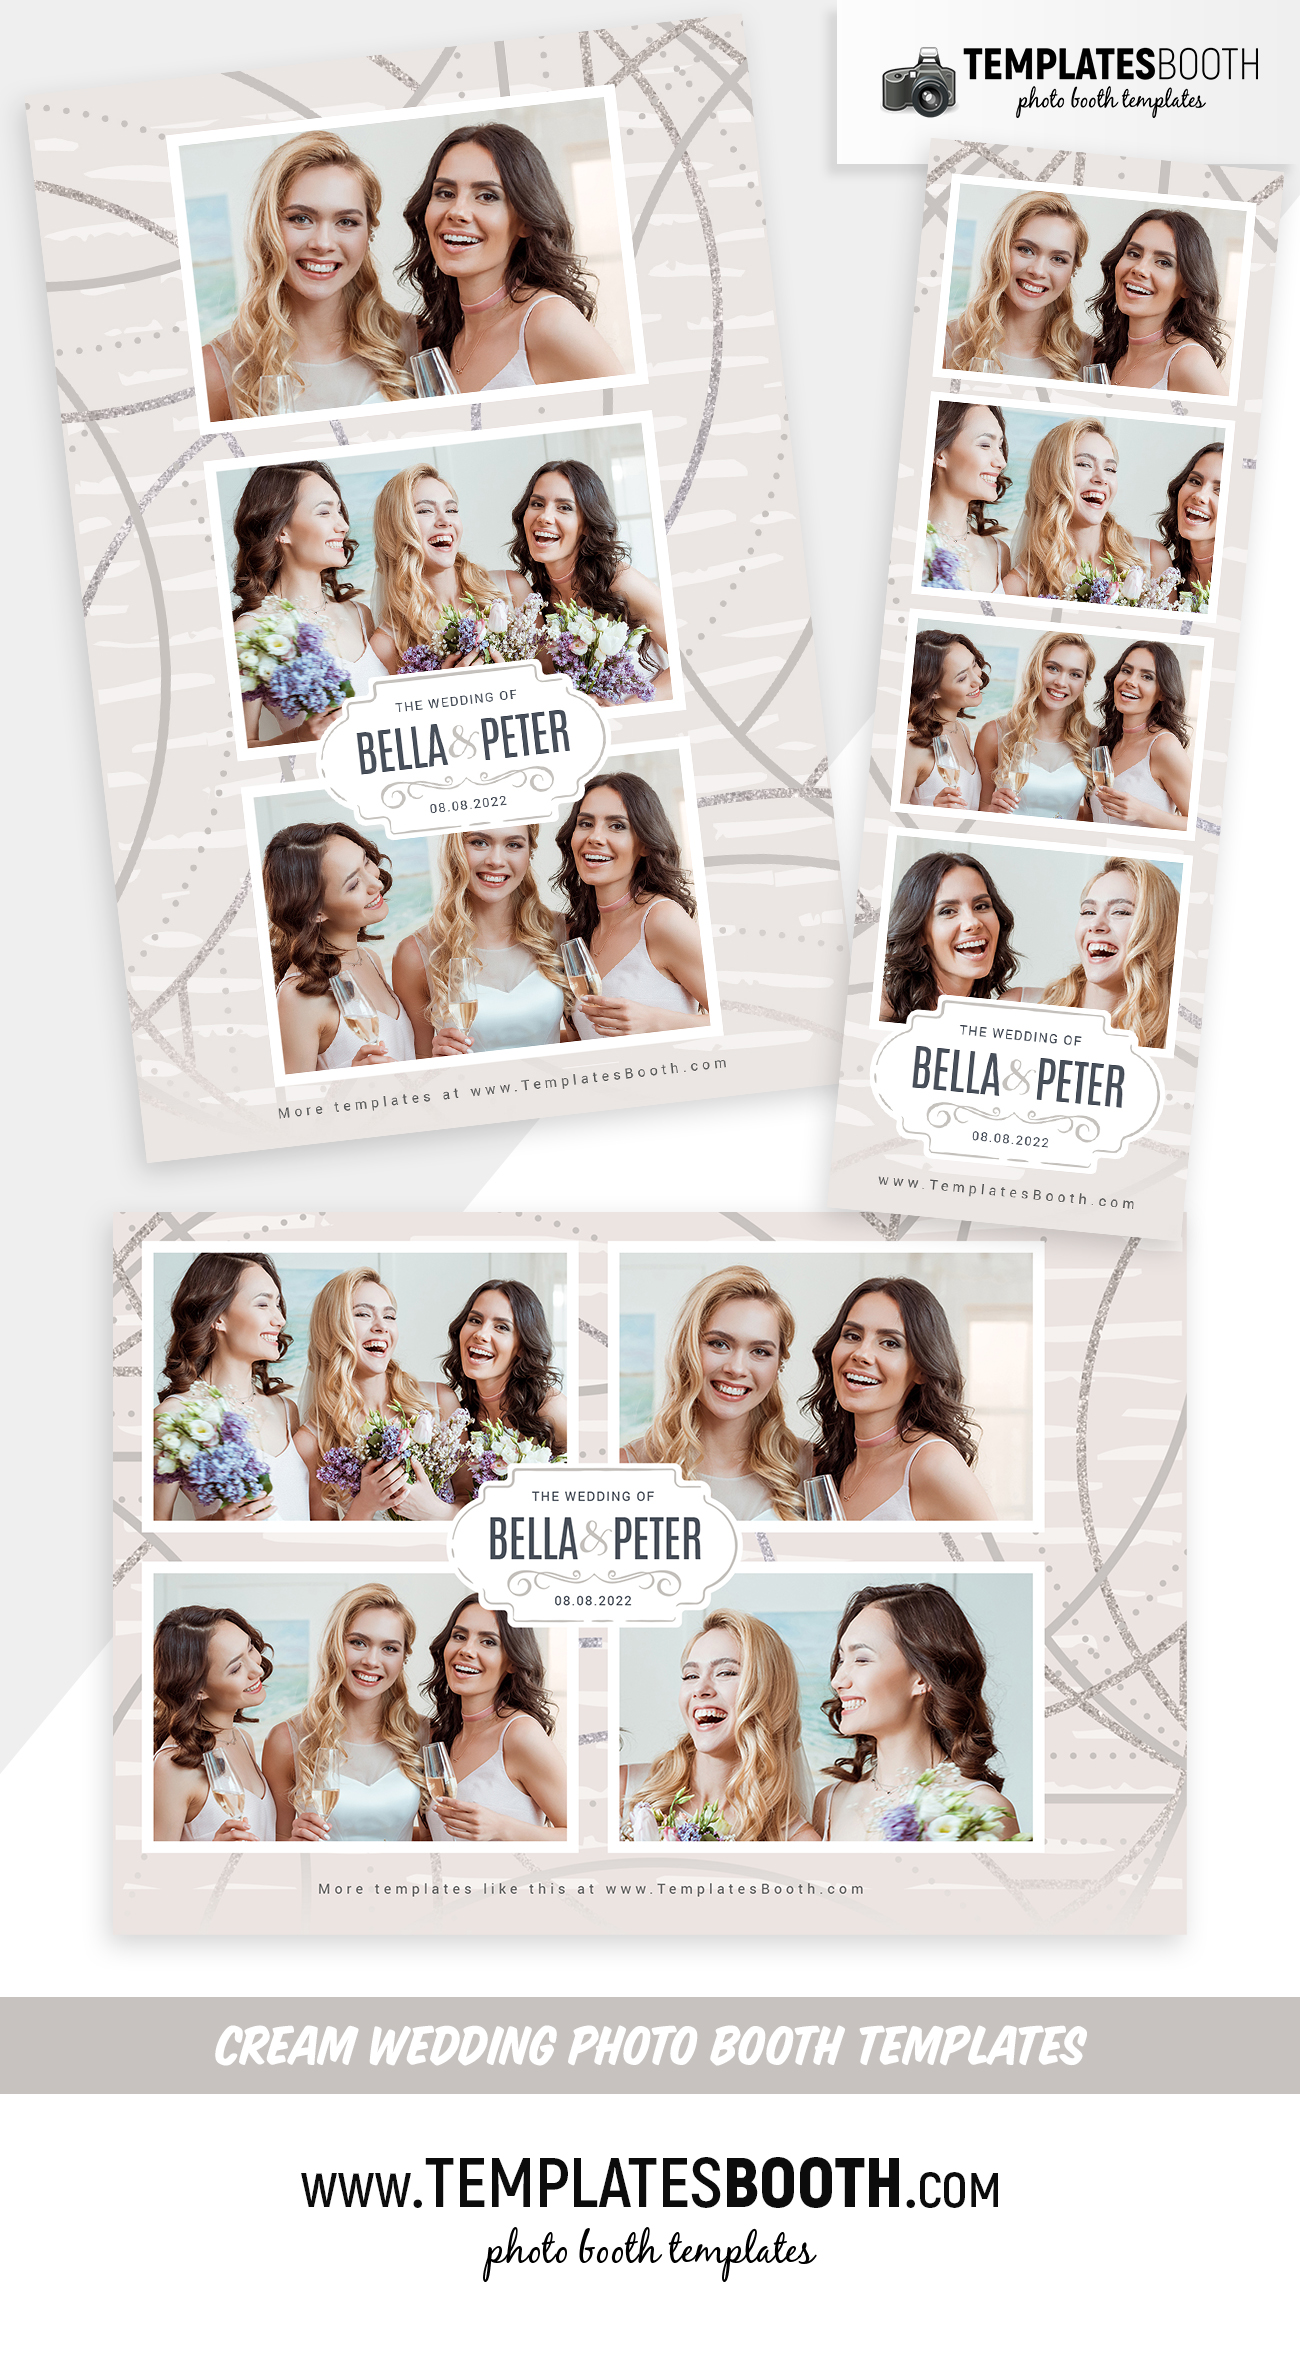 Cream Wedding Photo Booth Template